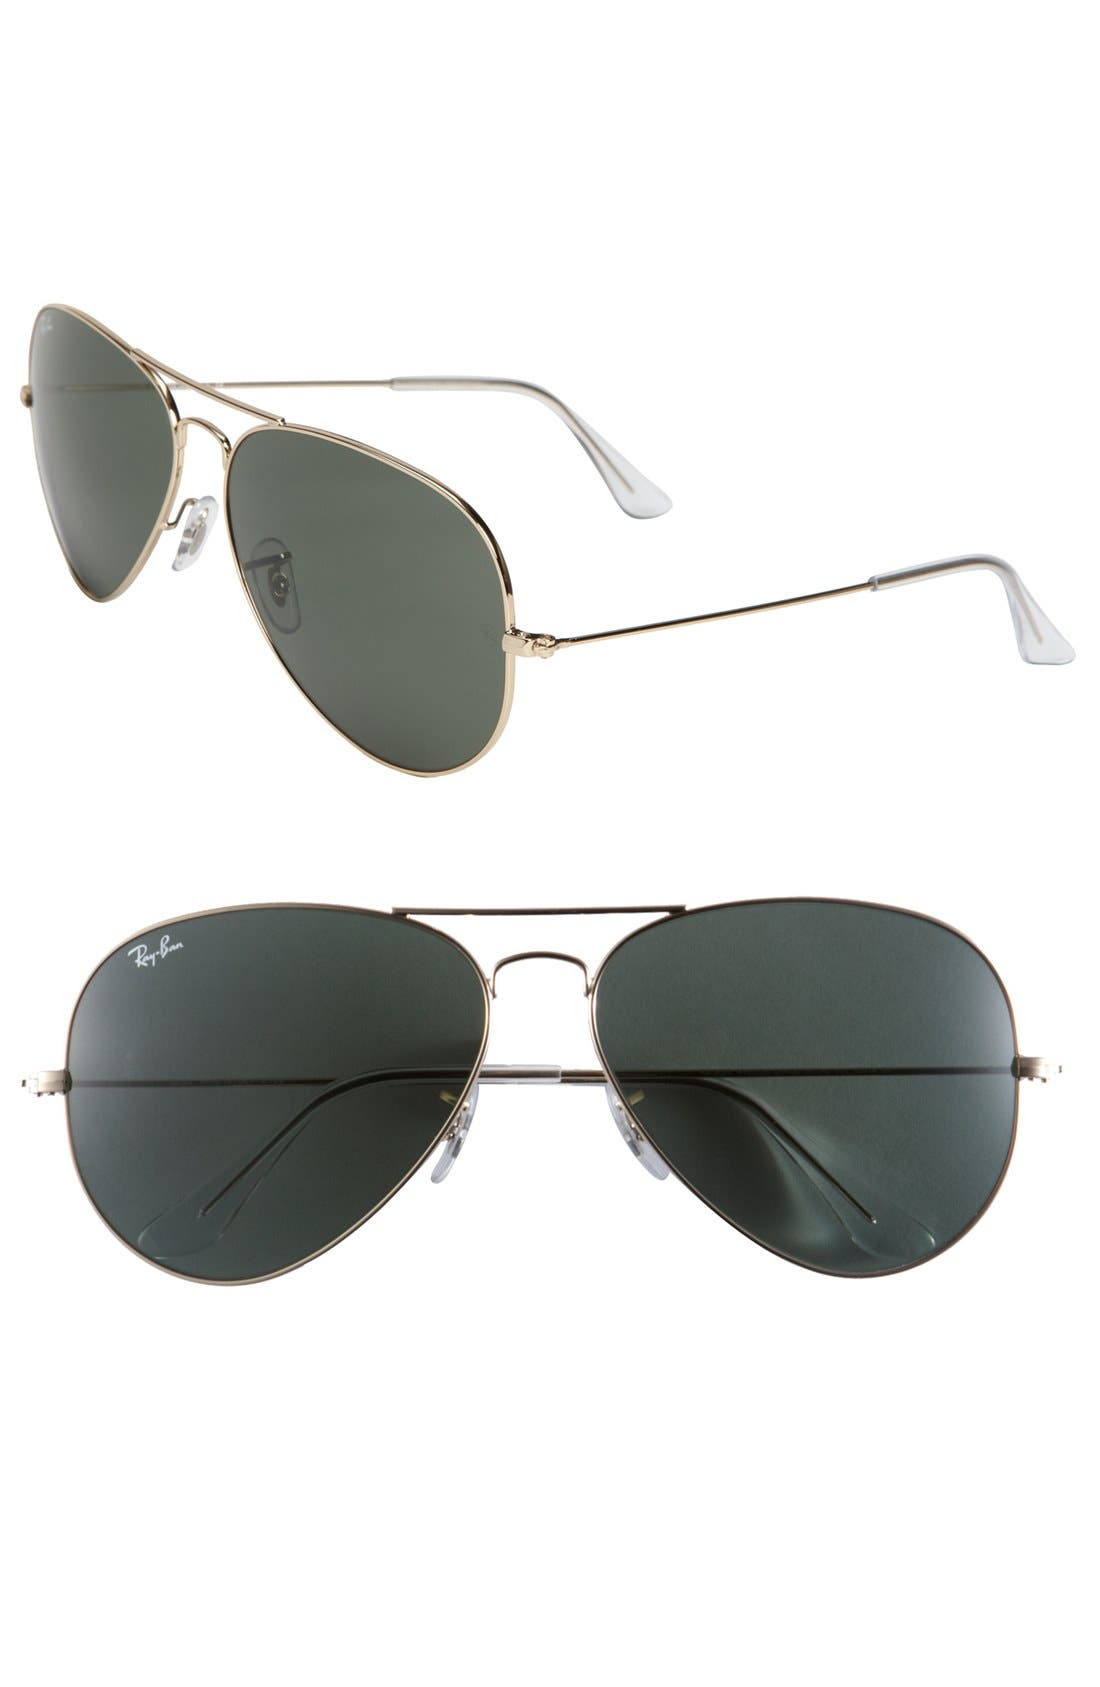 Ray-Ban Large Original 62Mm Aviator Sunglasses - Gold/ Green